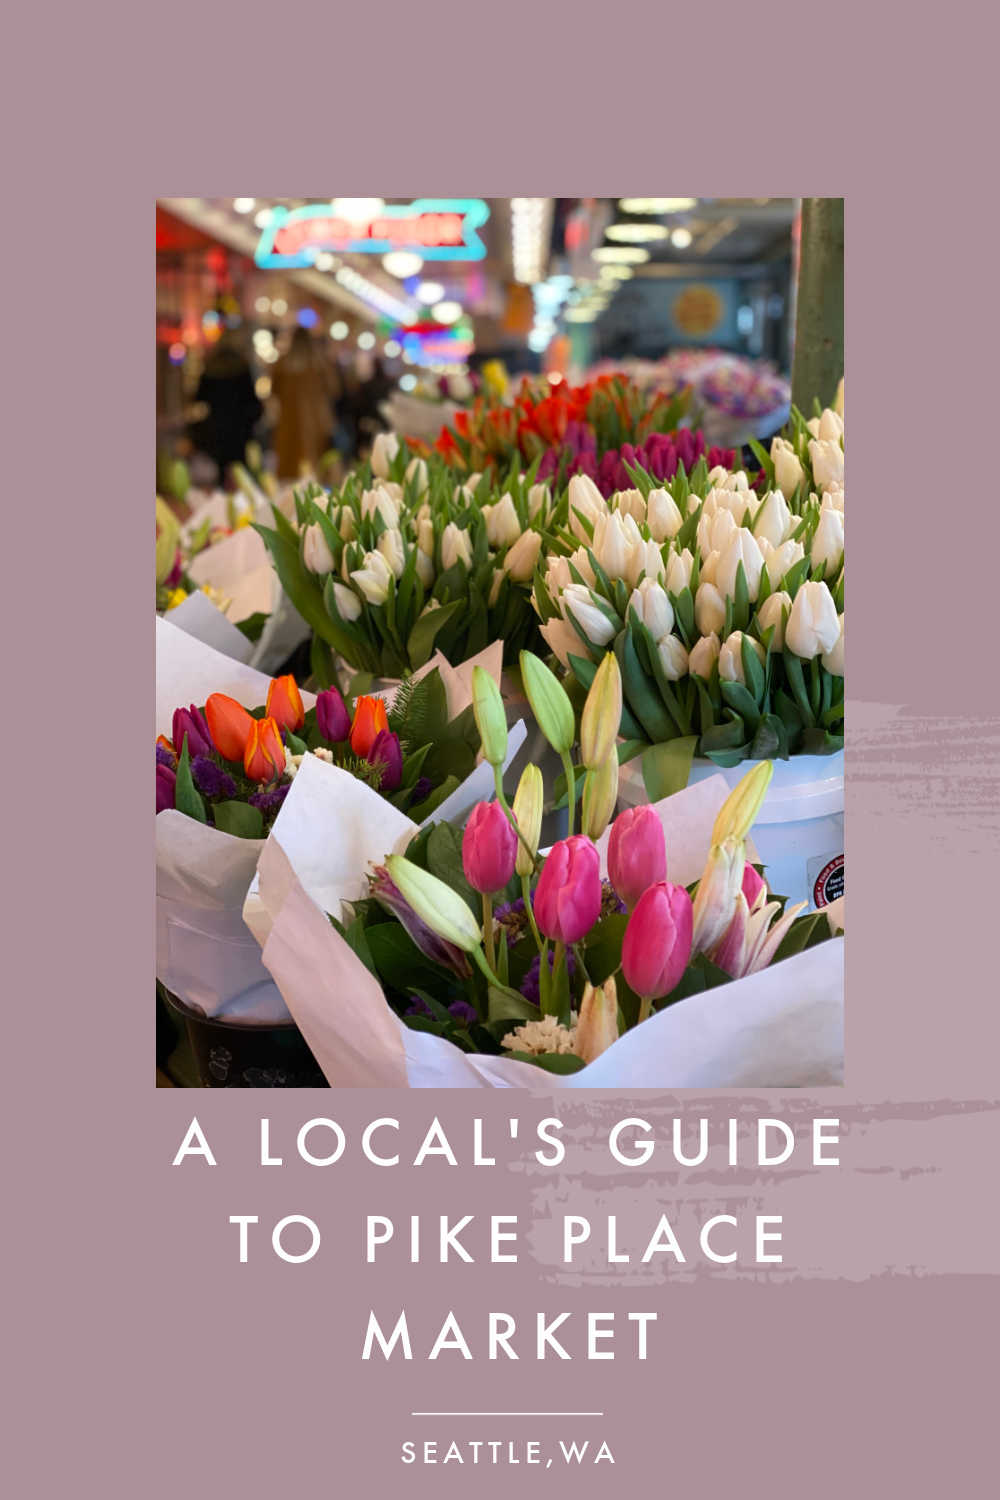 LOCALS GUIDE TO PIKE PLACE